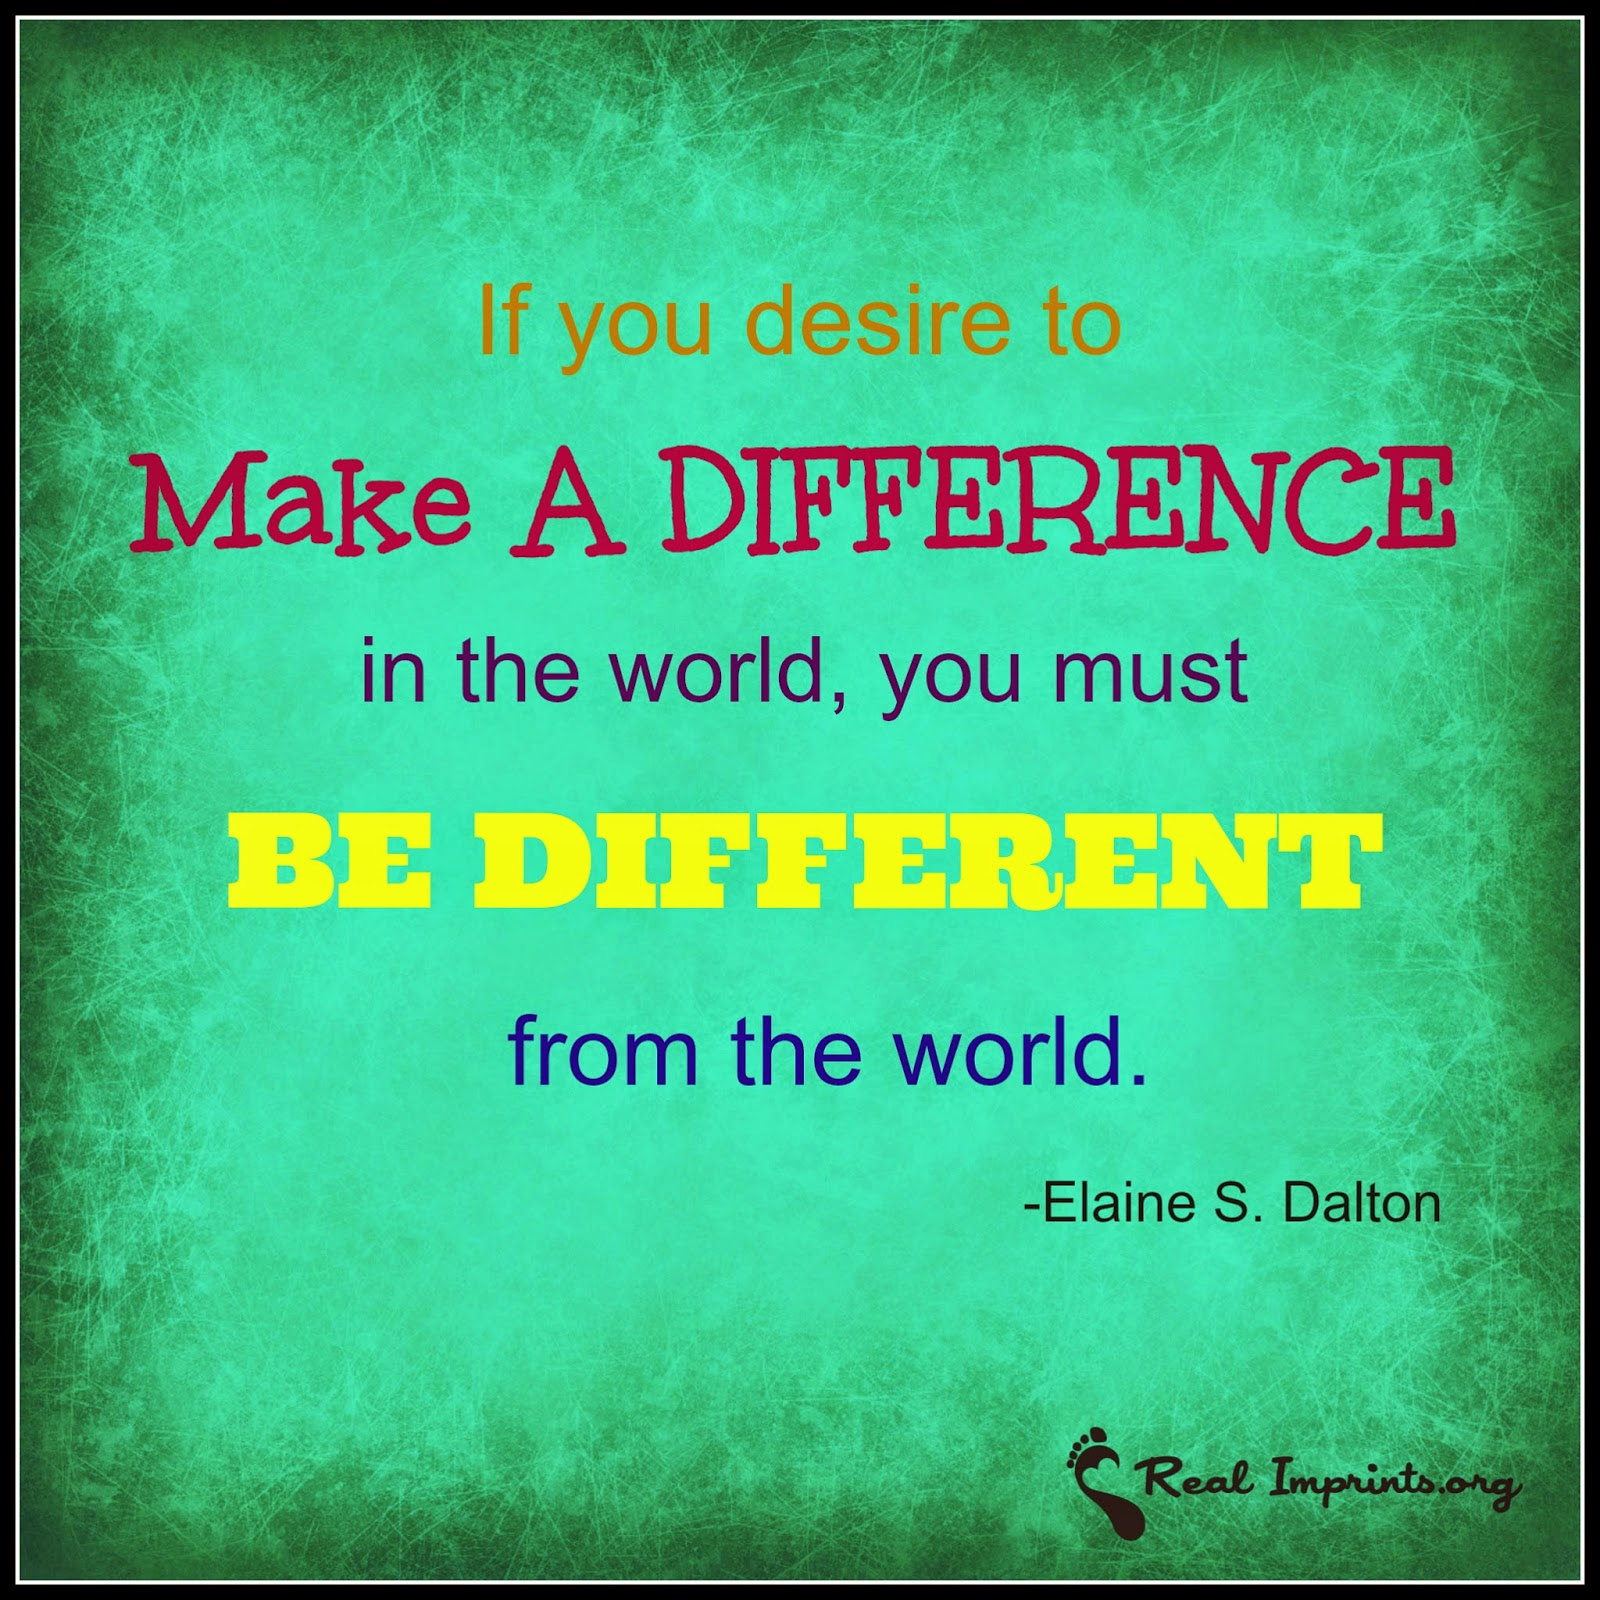 Quotes About Education Making A Difference 16 Quotes